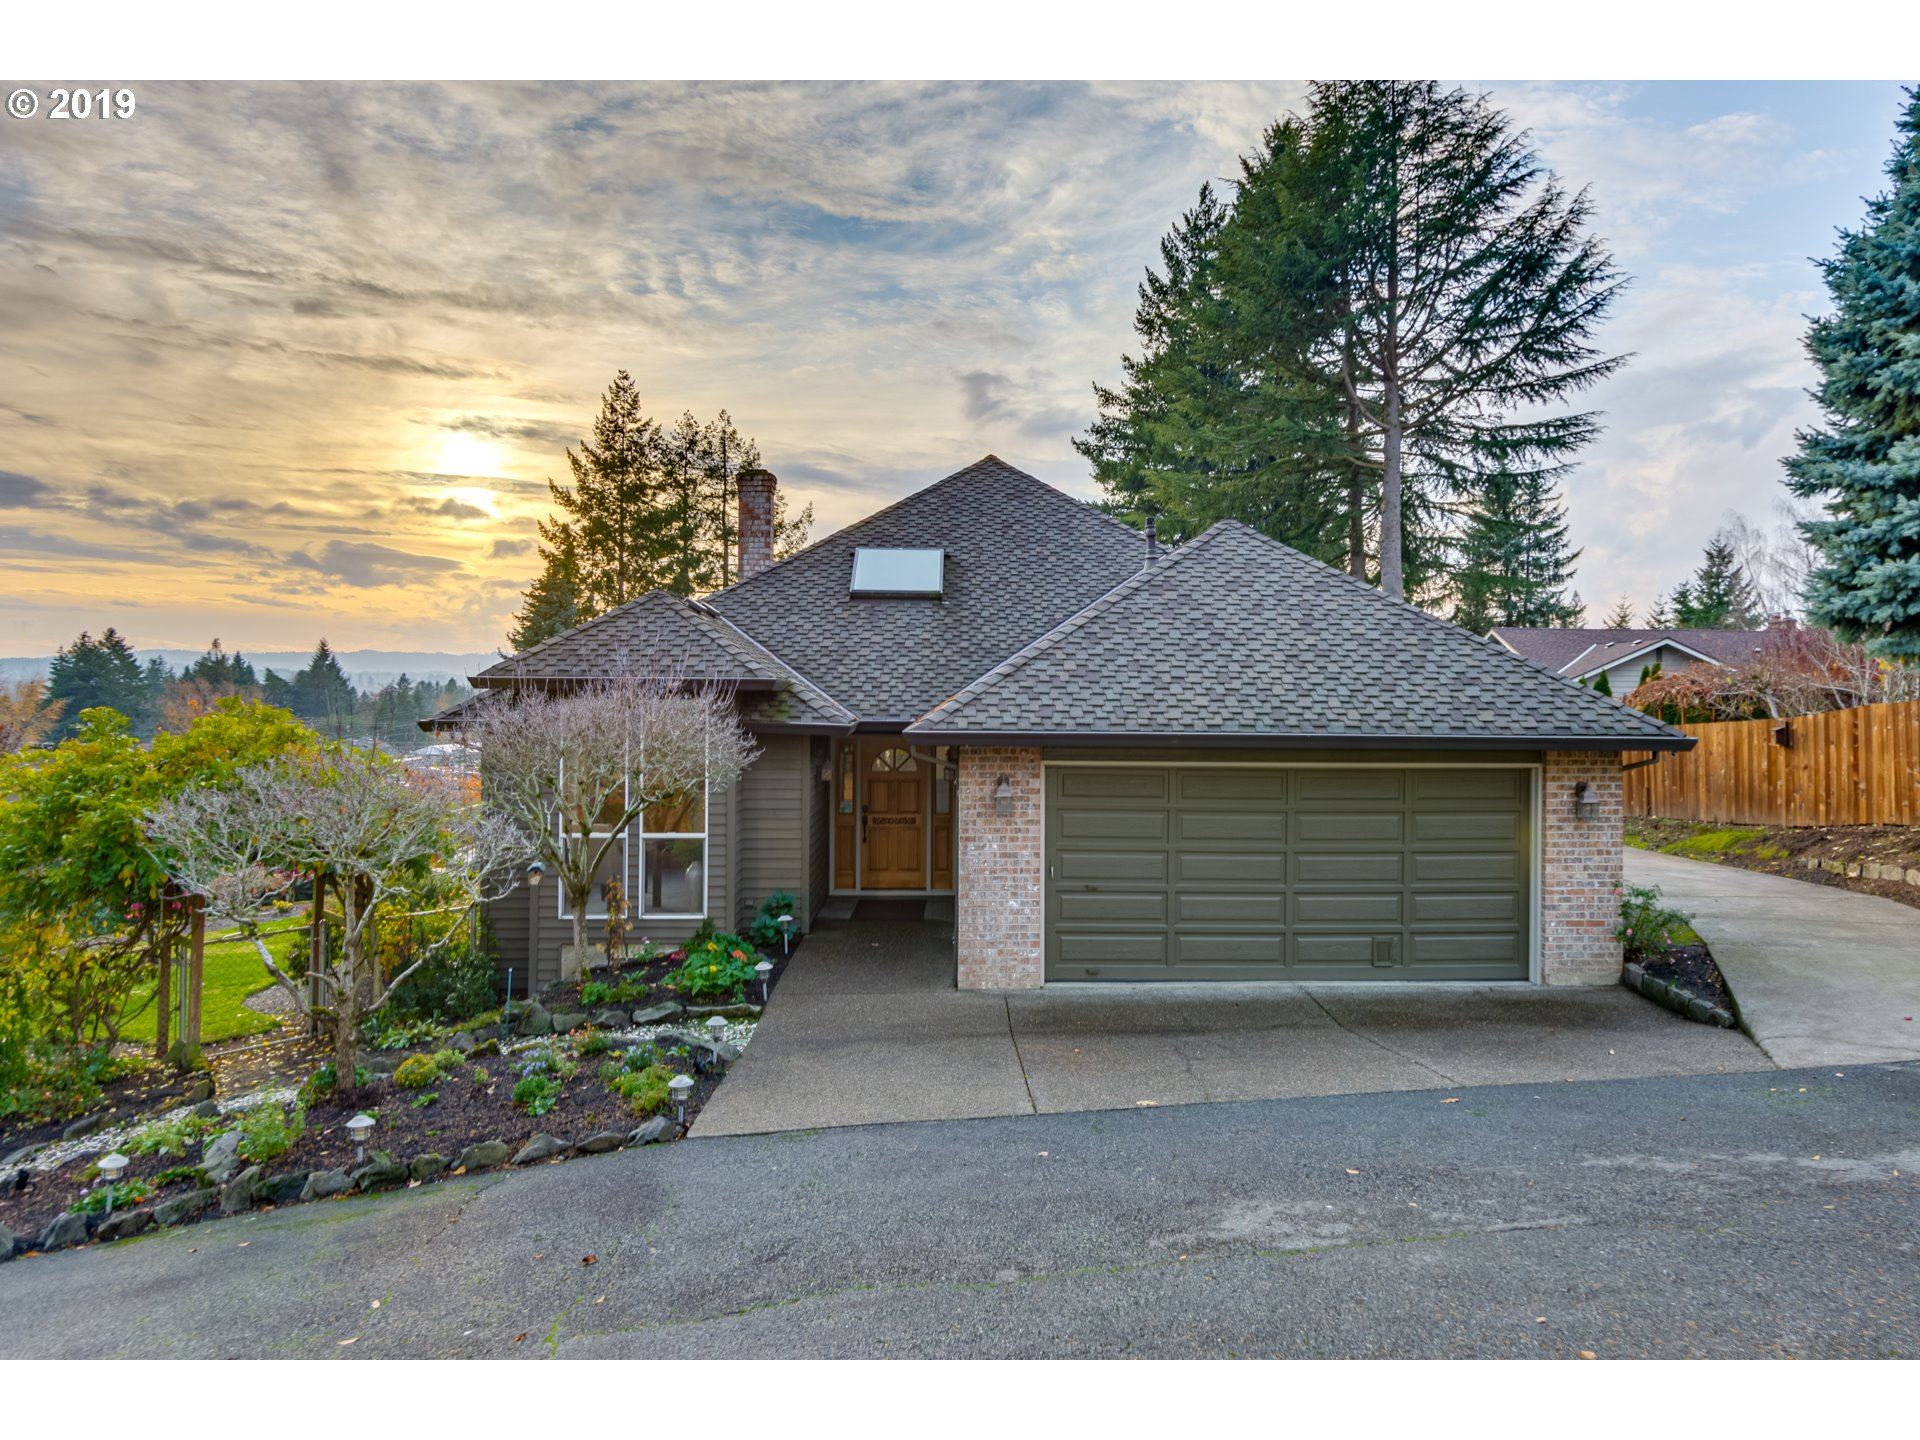 3575 SW VISTA DR, Portland, OR 97225 - MLS#: 19244405